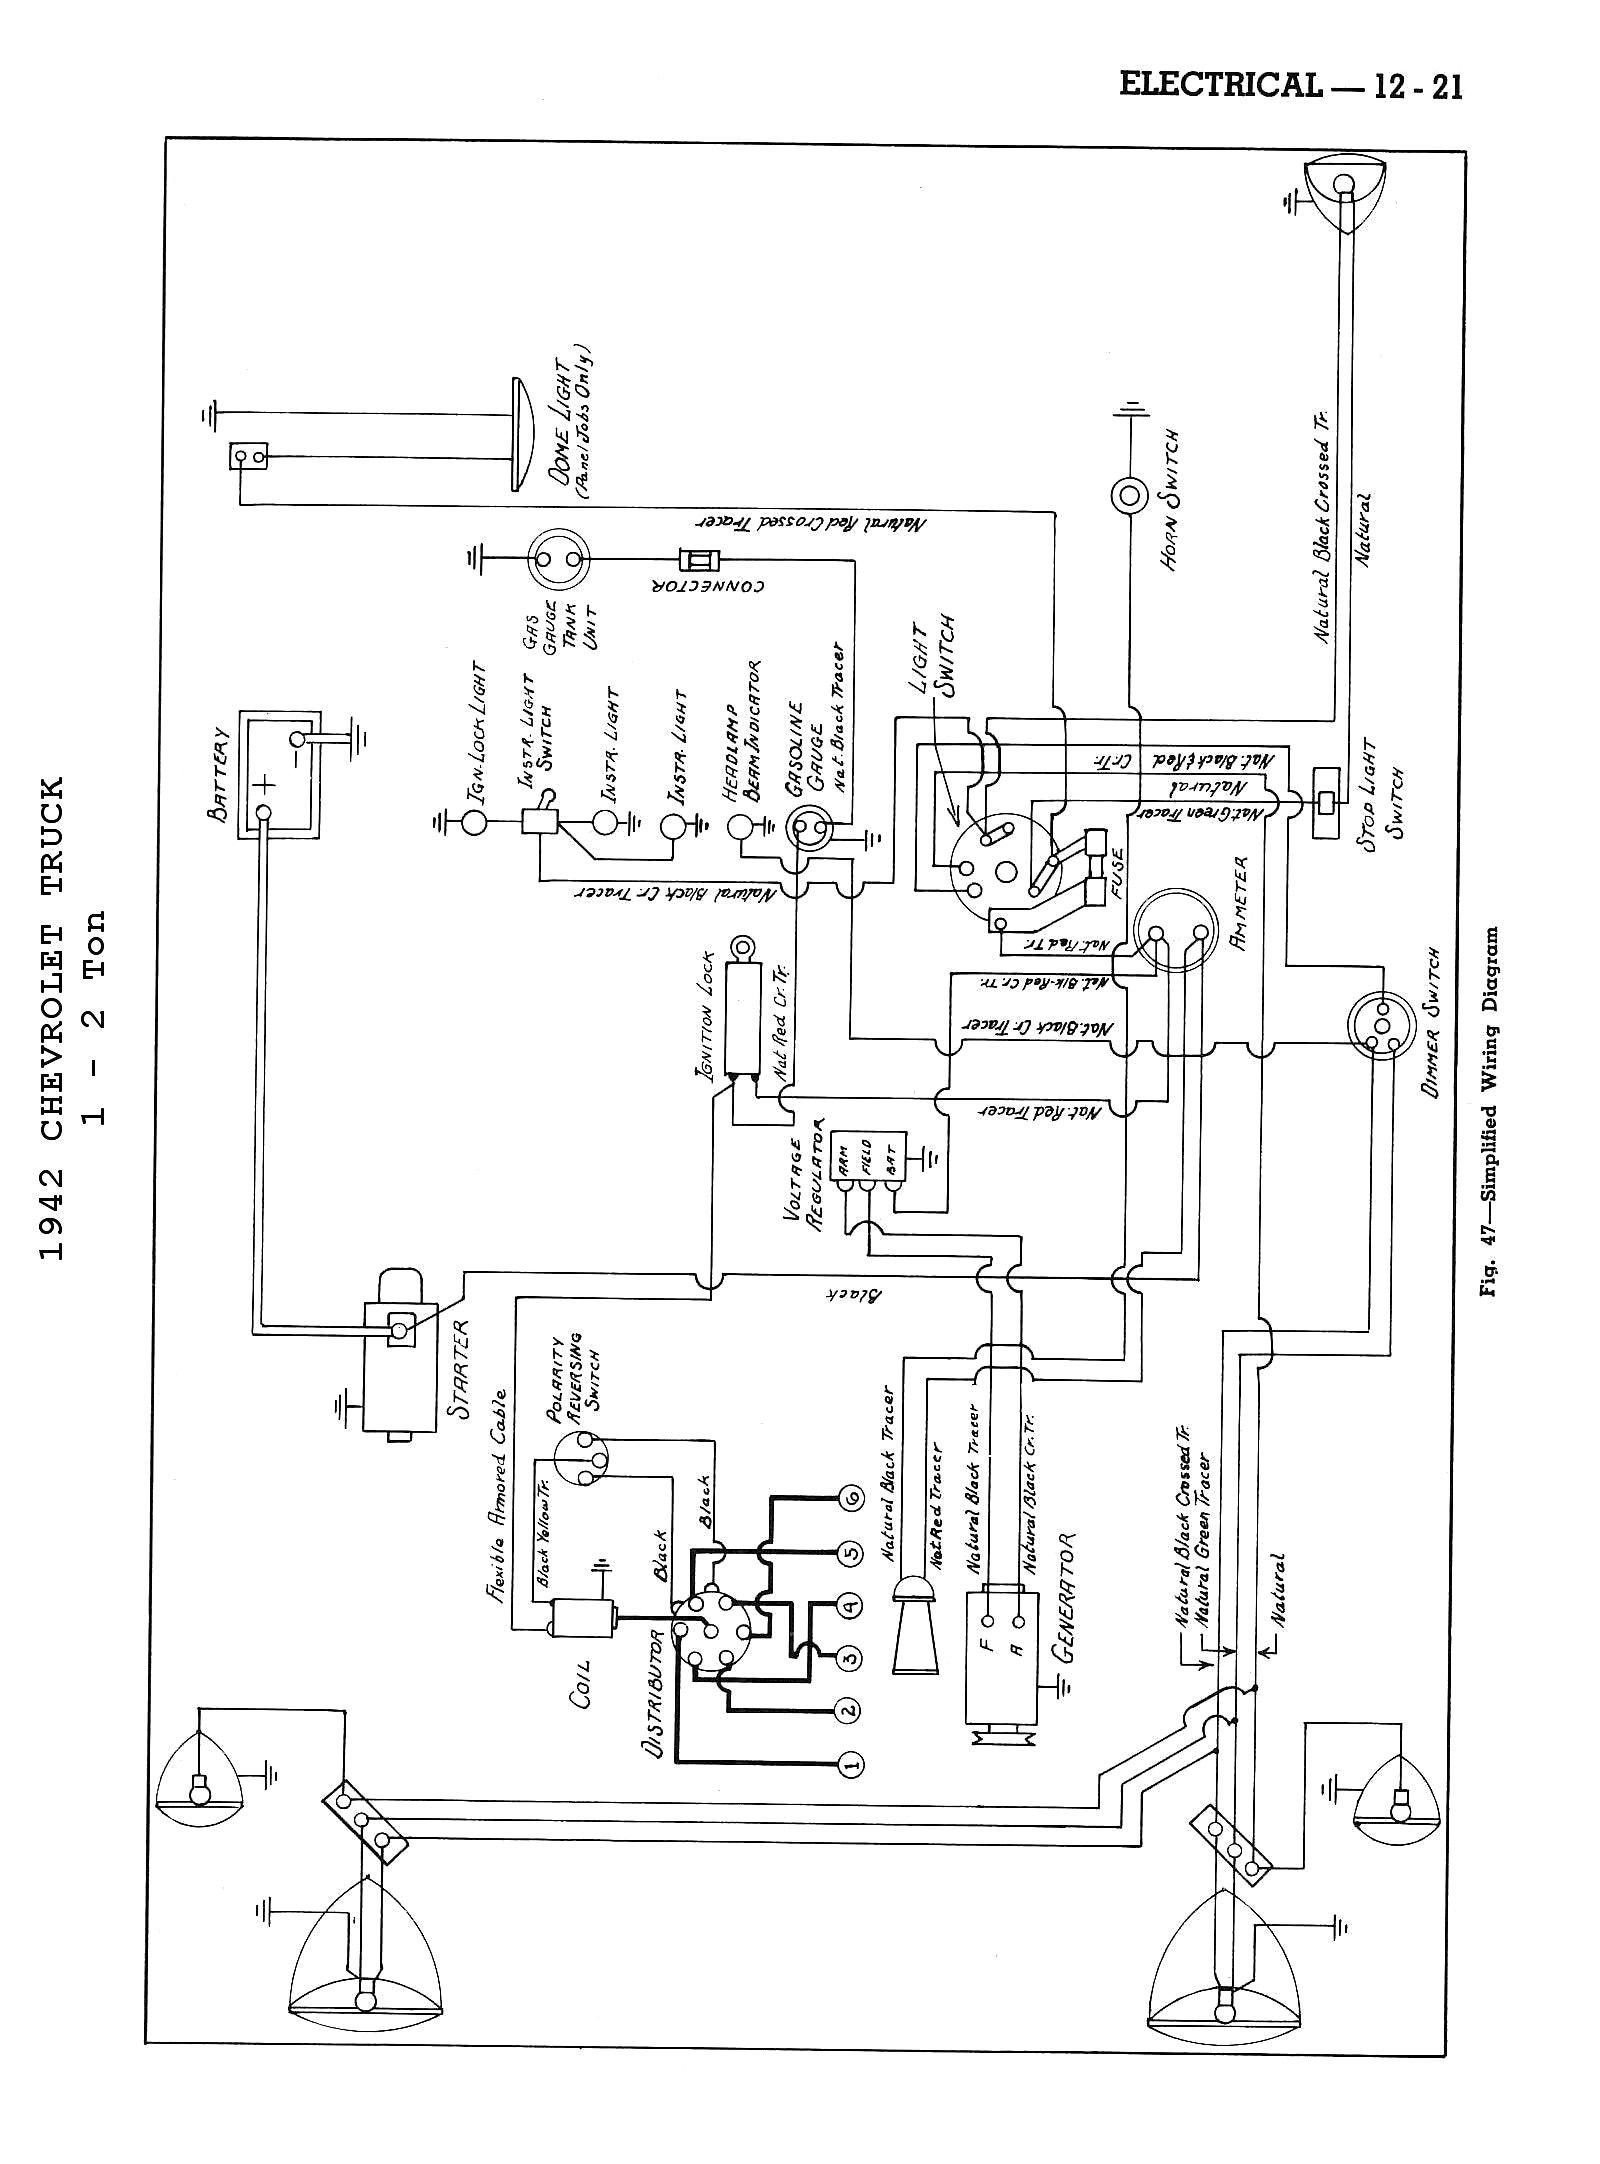 suburban water heater wiring diagram  alternator diagram